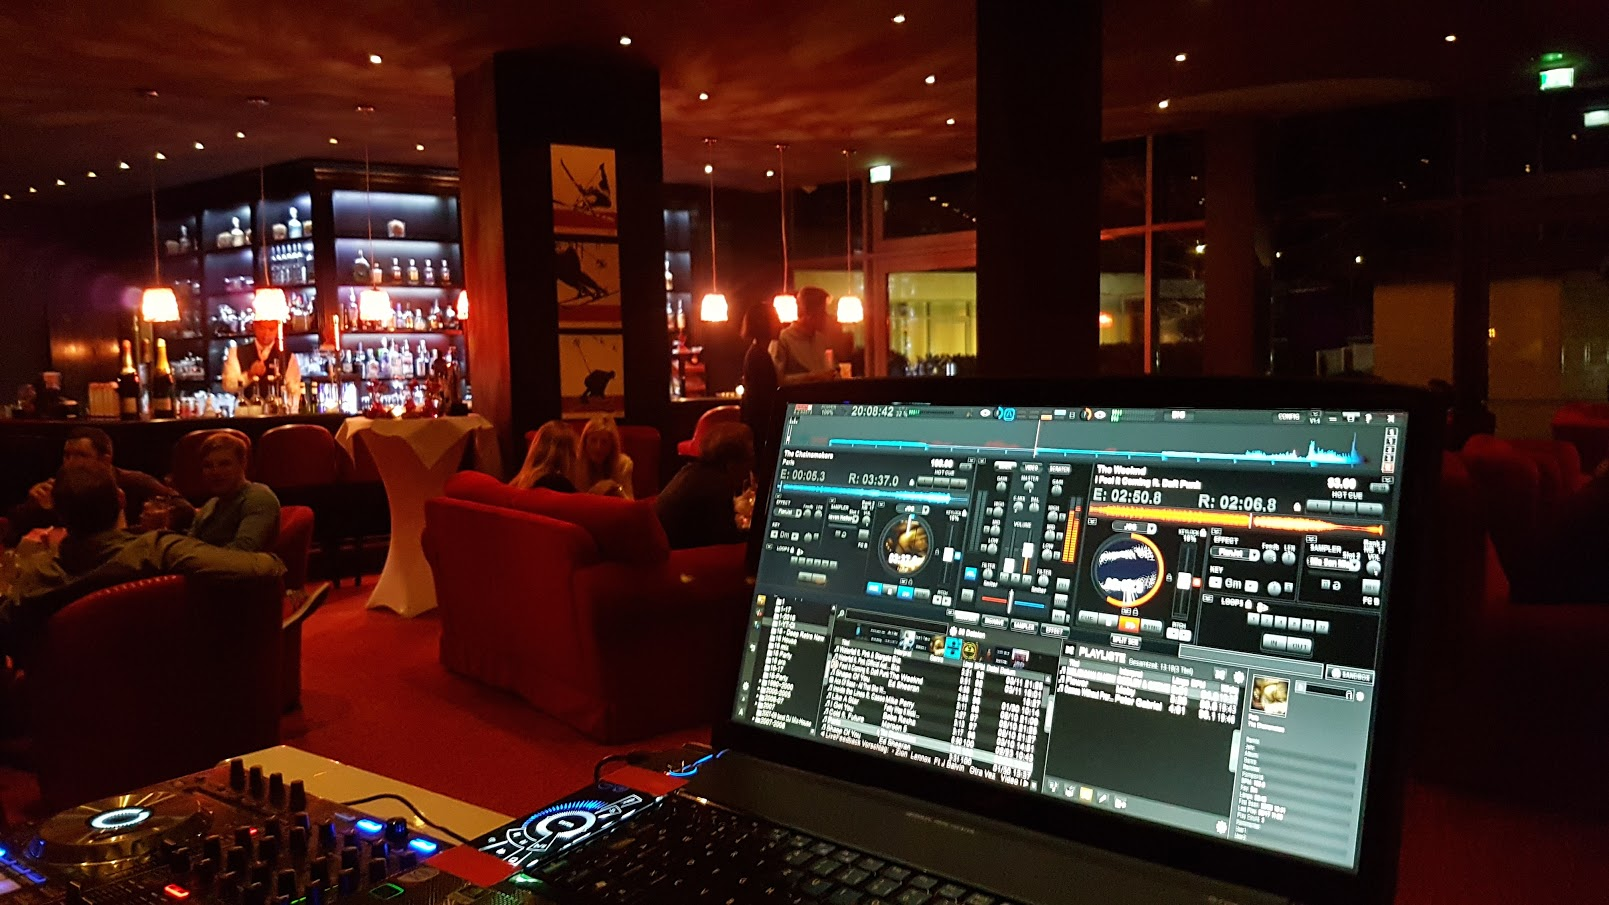 DJ @ Kempinski Kitzbühel Smokers Lounge